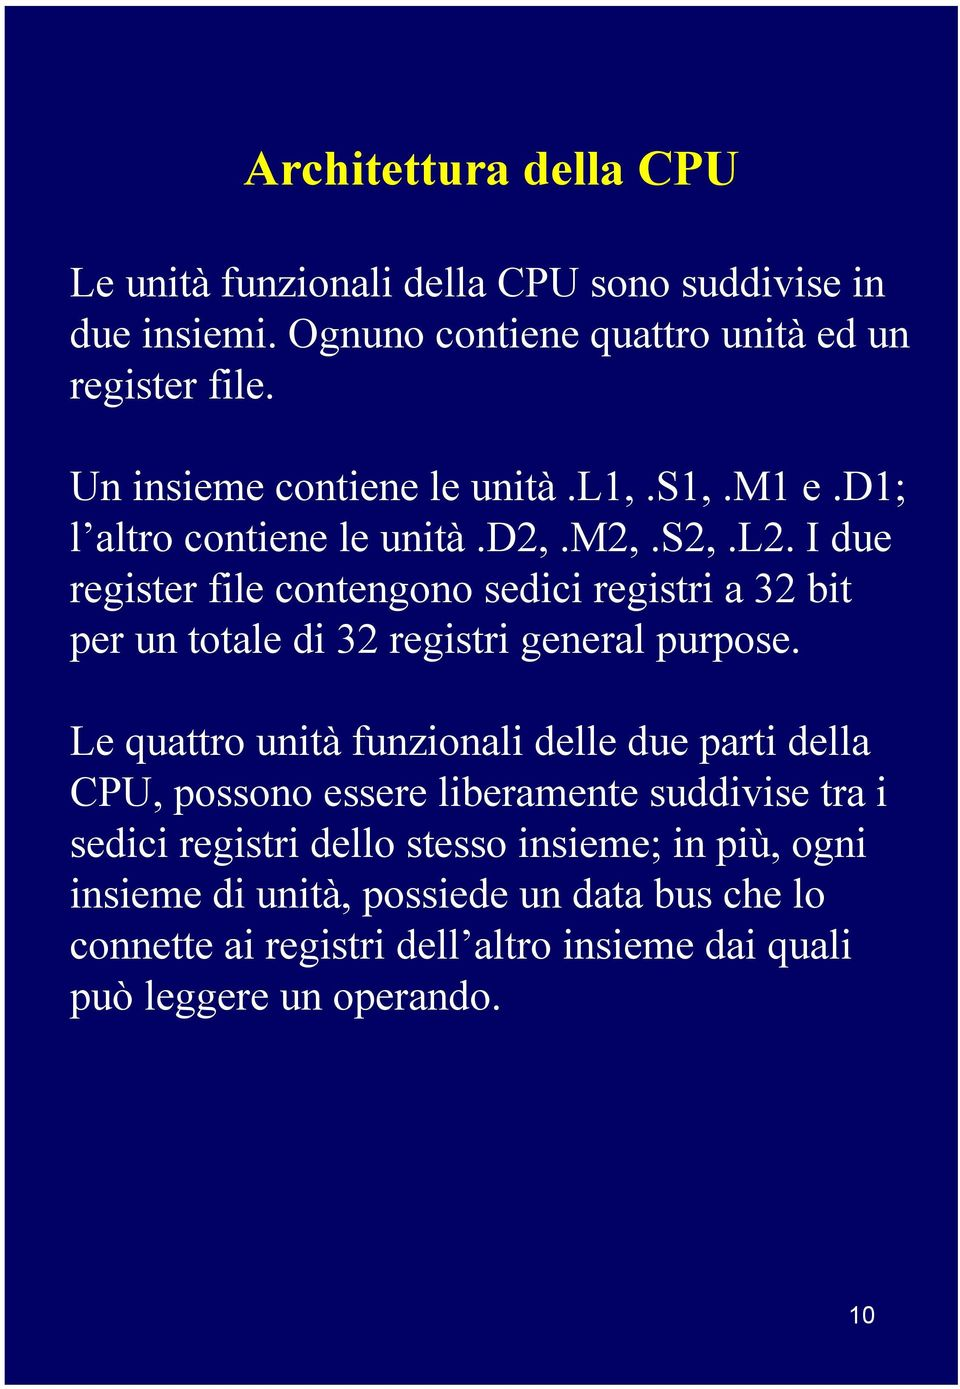 I due register file contengono sedici registri a 32 bit per un totale di 32 registri general purpose.